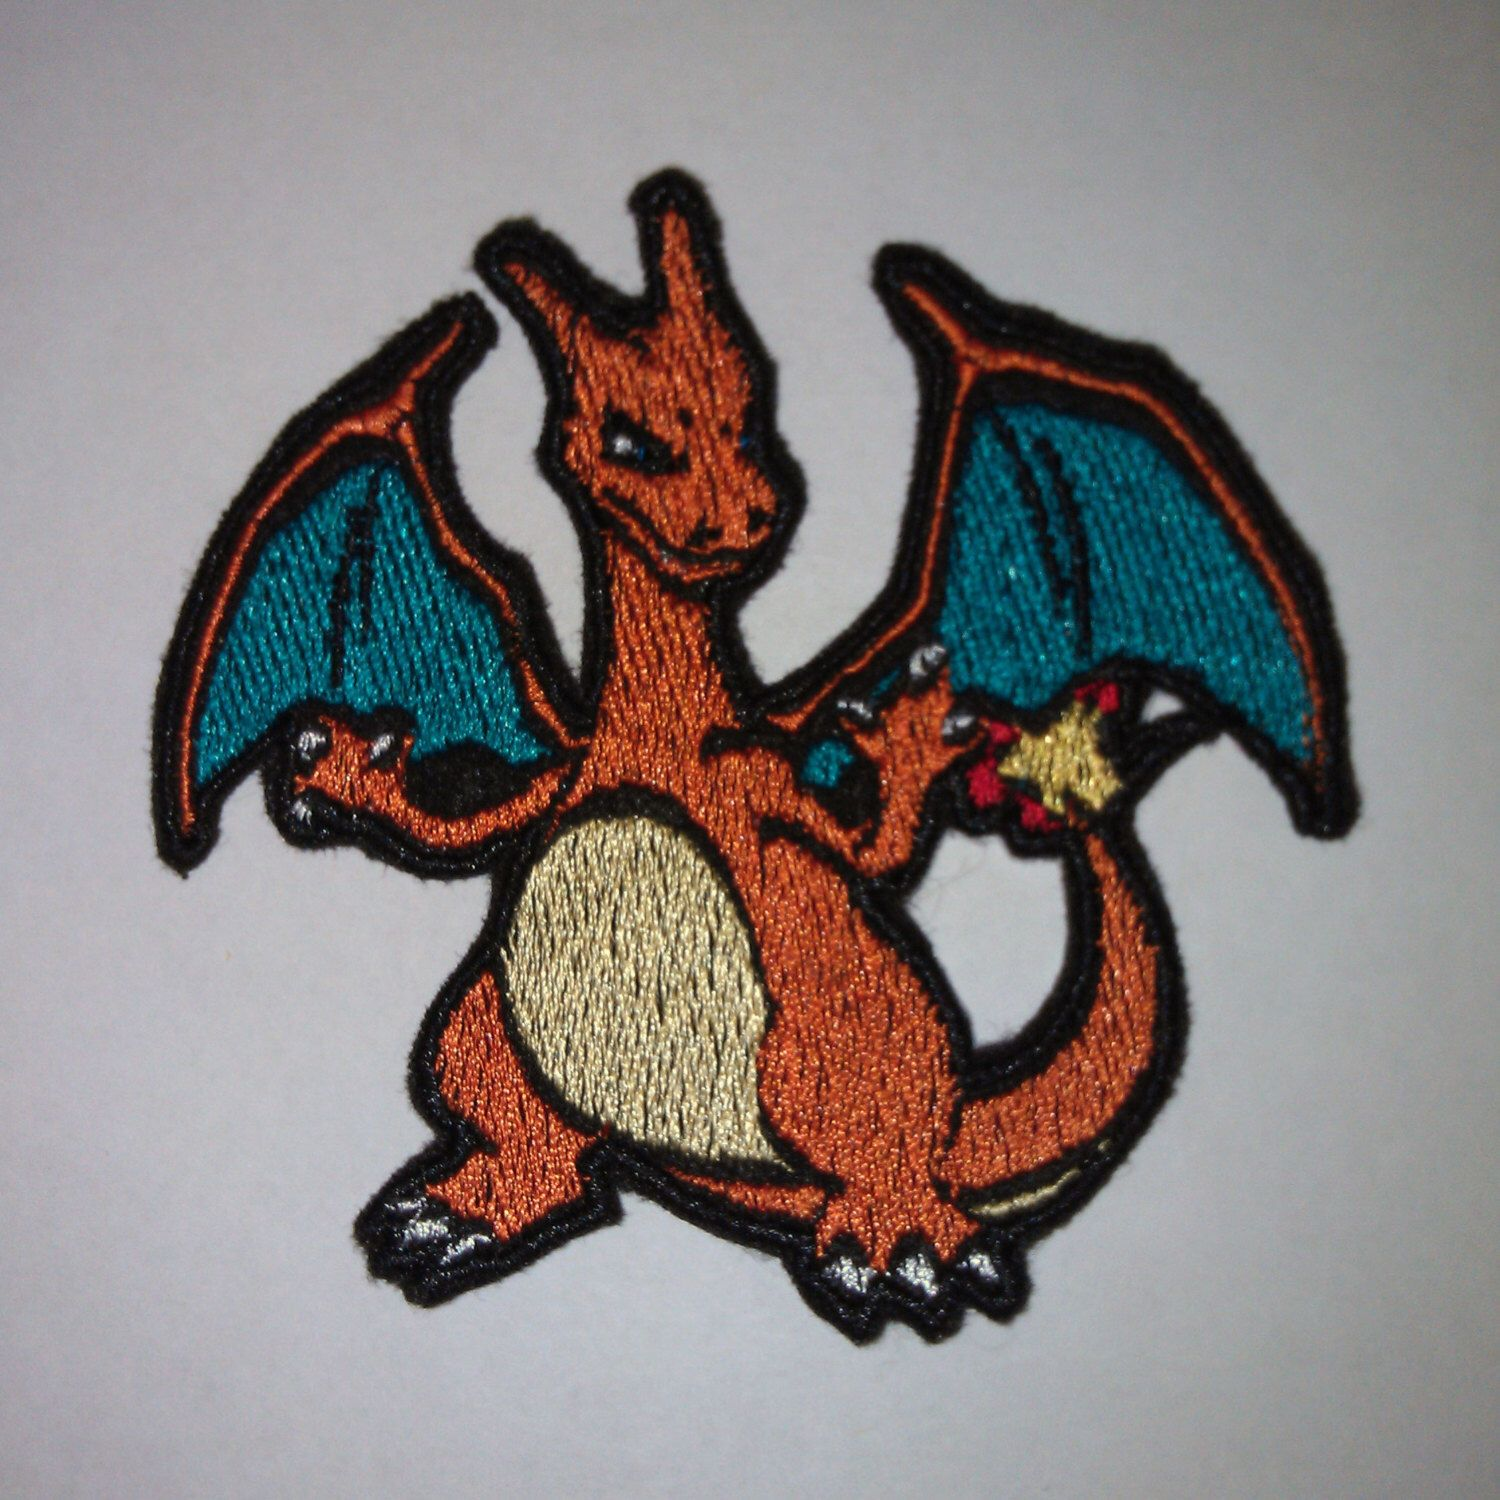 Charizard - Iron on patch - Shiny Metallic Embroidered.   Pokemon patch. by Critstitch on Etsy https://www.etsy.com/listing/201488446/charizard-iron-on-patch-shiny-metallic